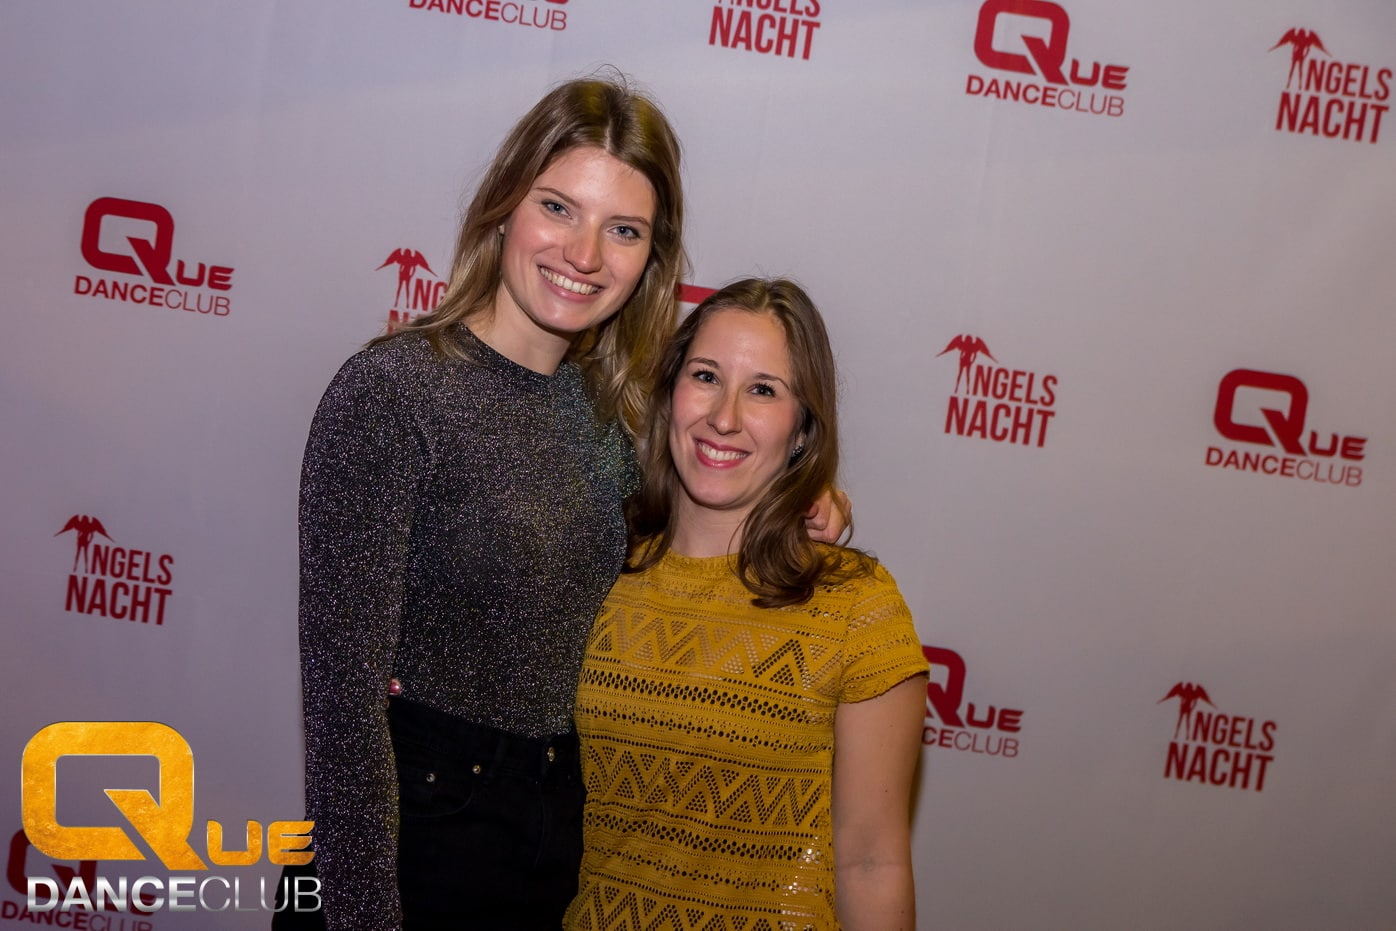 2018_12_25_Que_Danceclub_Engels_Nacht_2018_Nightlife_Scene_Timo_013